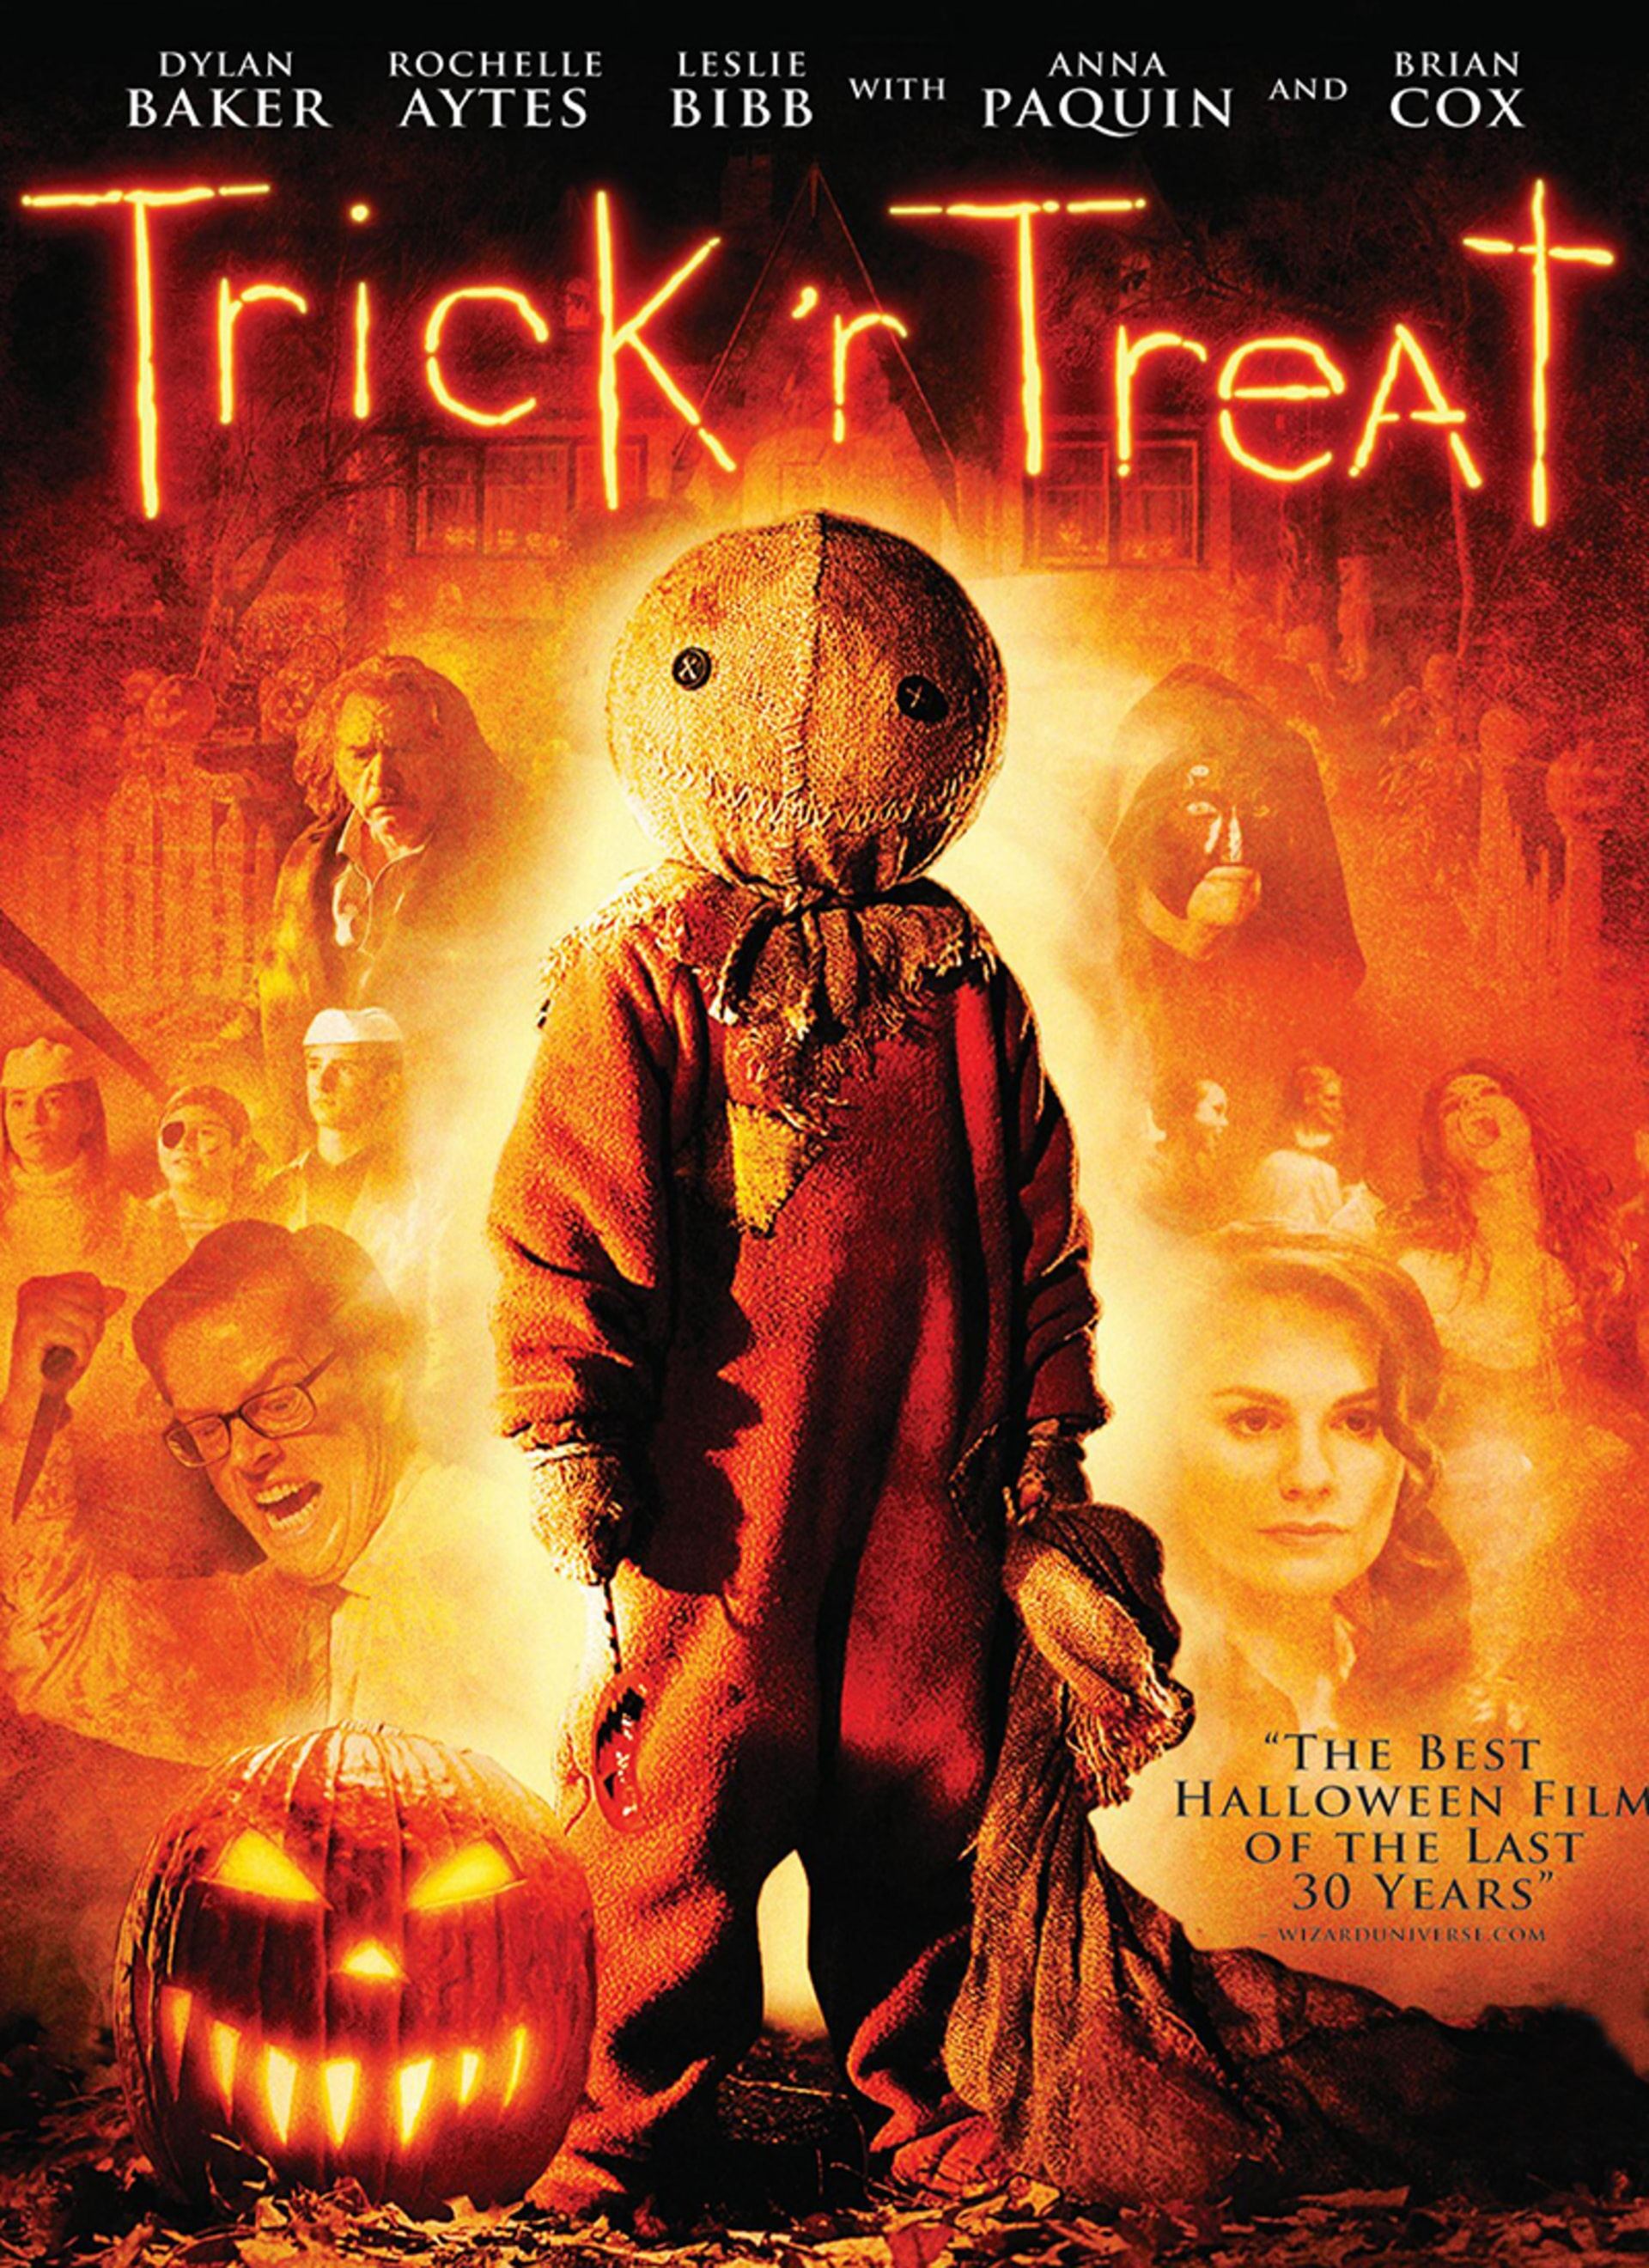 Trick 'r Treat - Poster 1